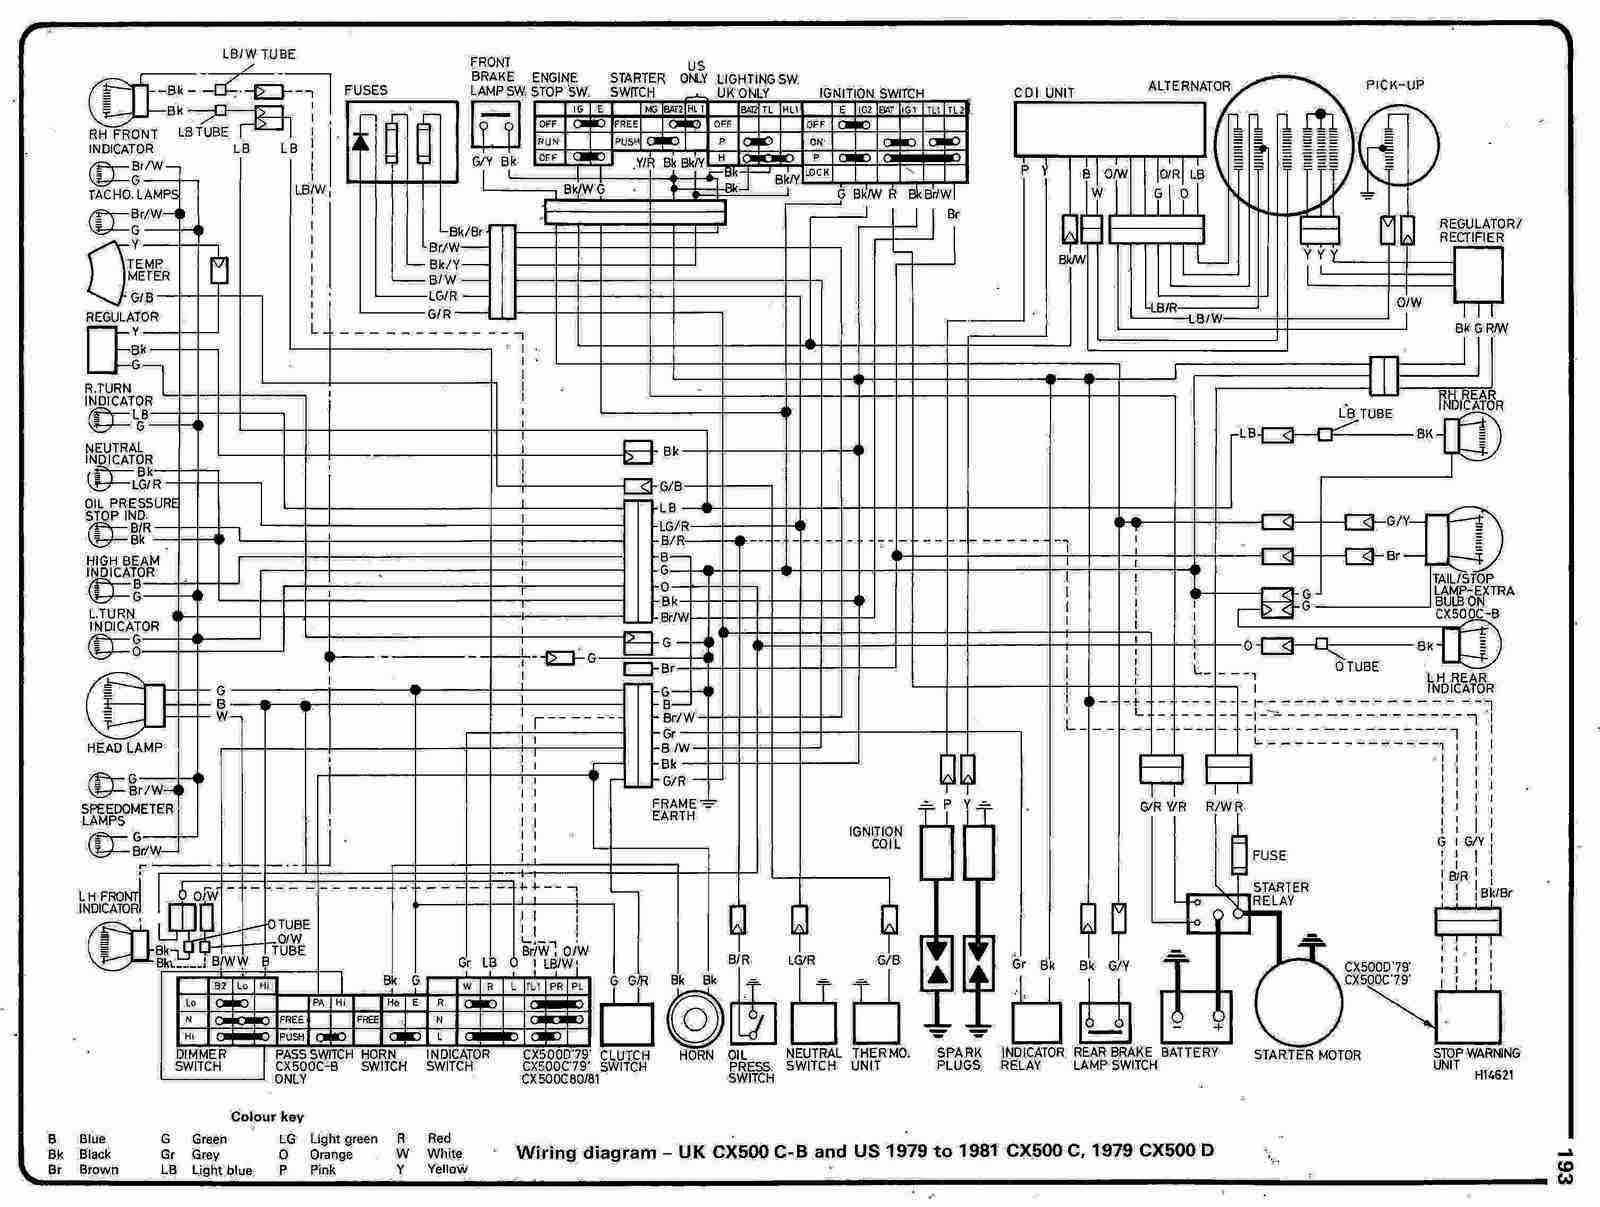 Honda Elite 80 Wiring Diagram Color O2 Sensor 1986 Tires 125 Sabre Sailboat On